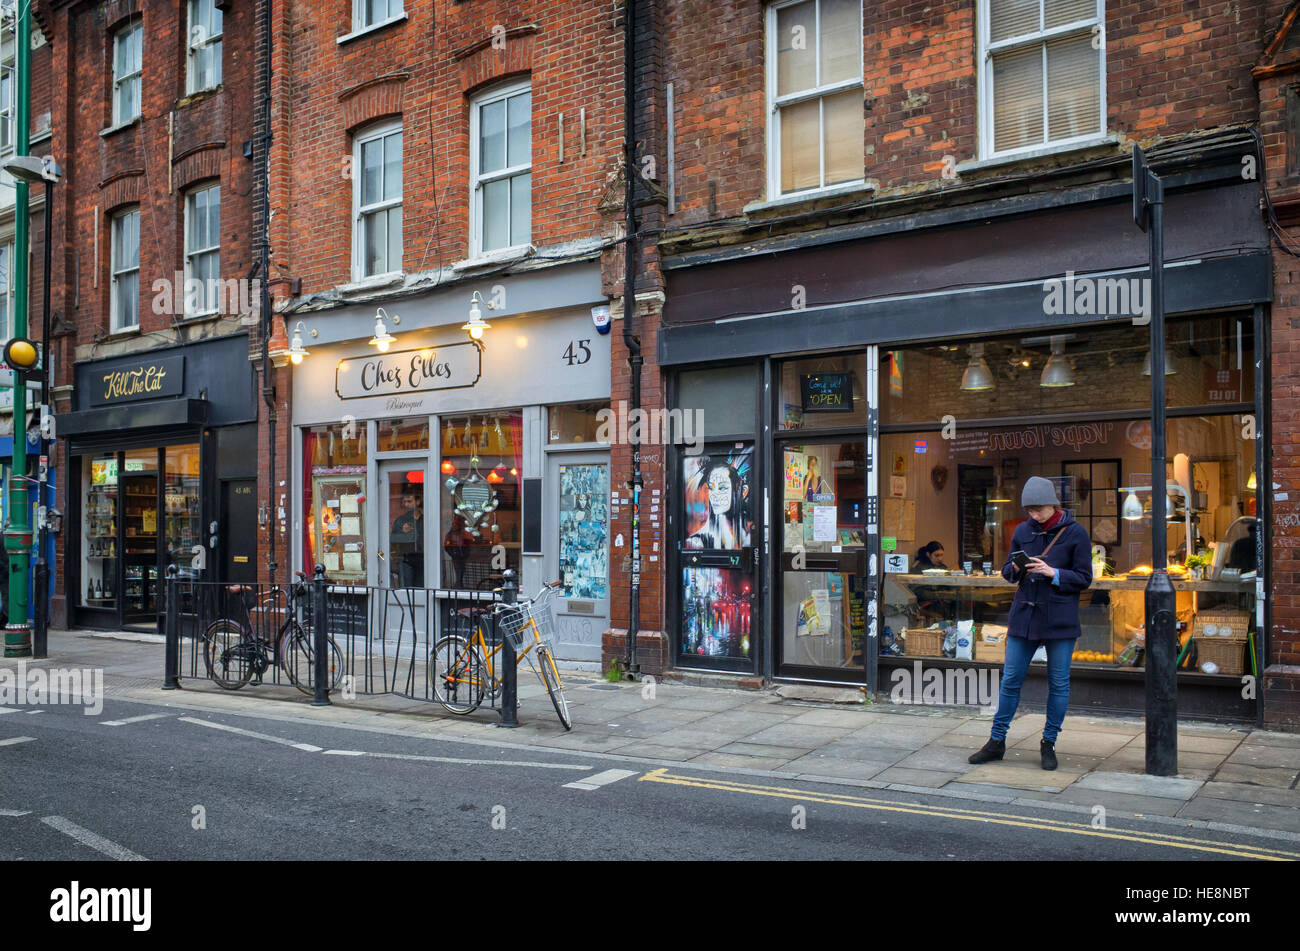 Brick Lane Spitalfields, new shops showing how the area is changing as gentrification moves in. - Stock Image